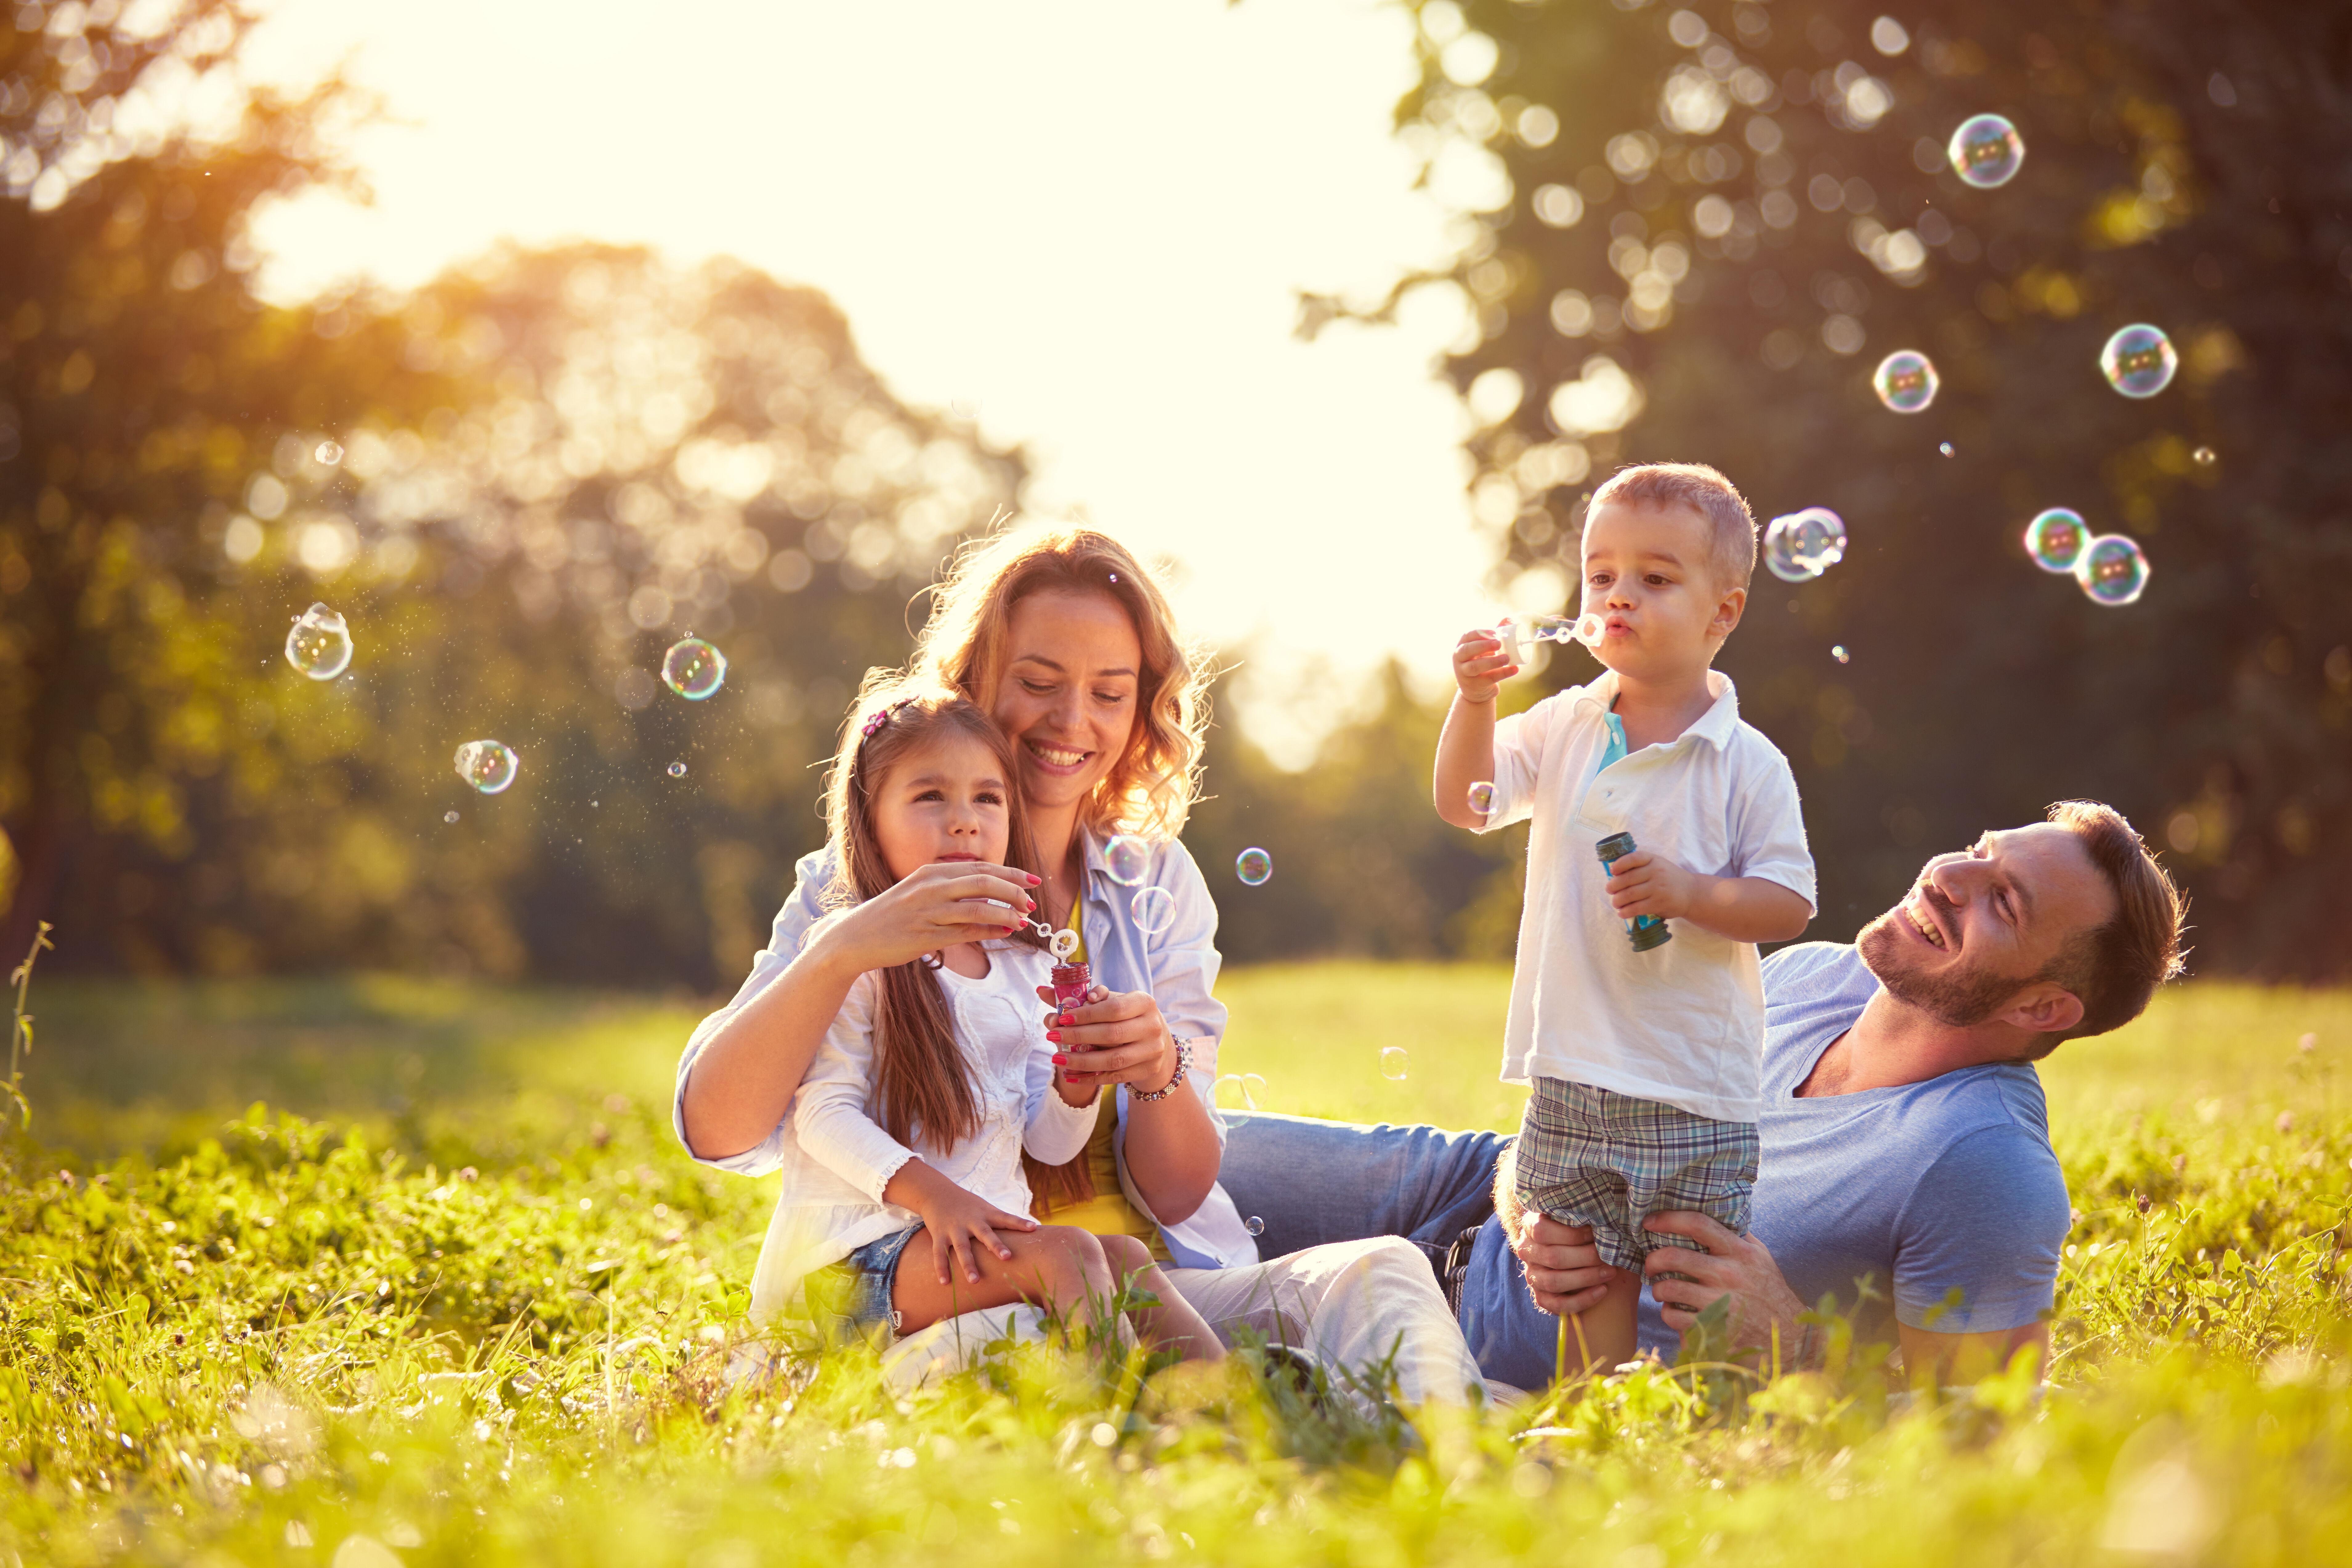 children and adults with known allergies symptoms